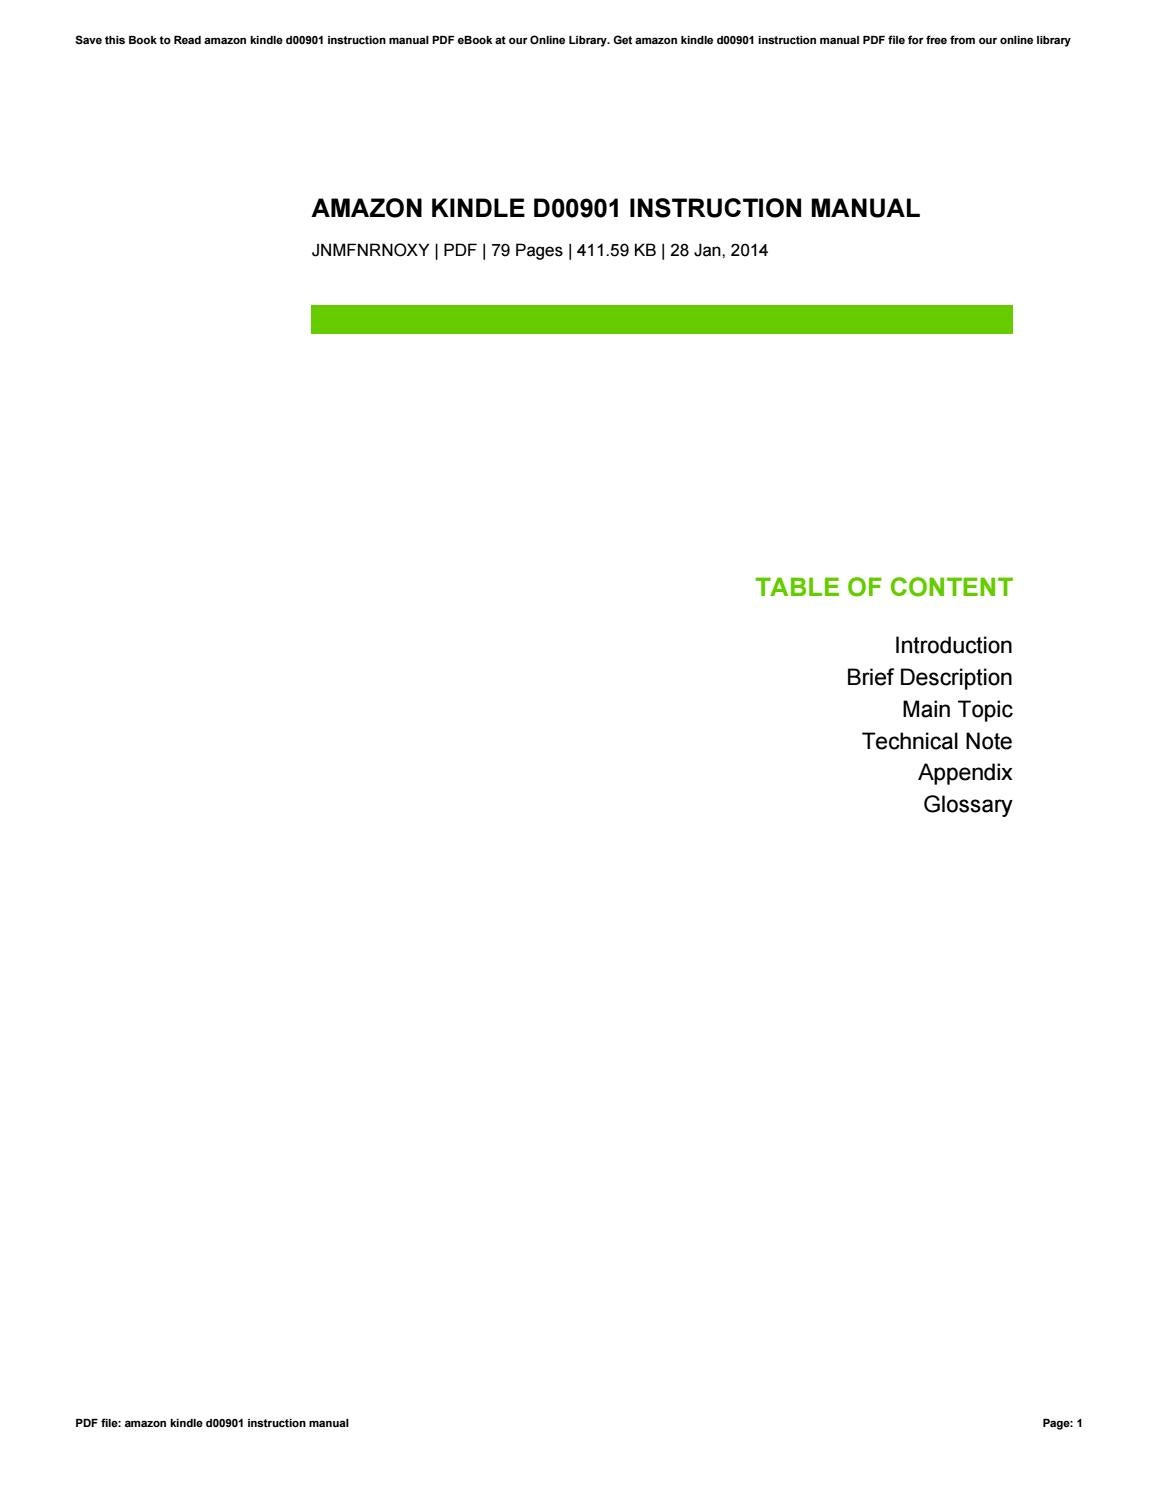 instruction manual for kindle d00901